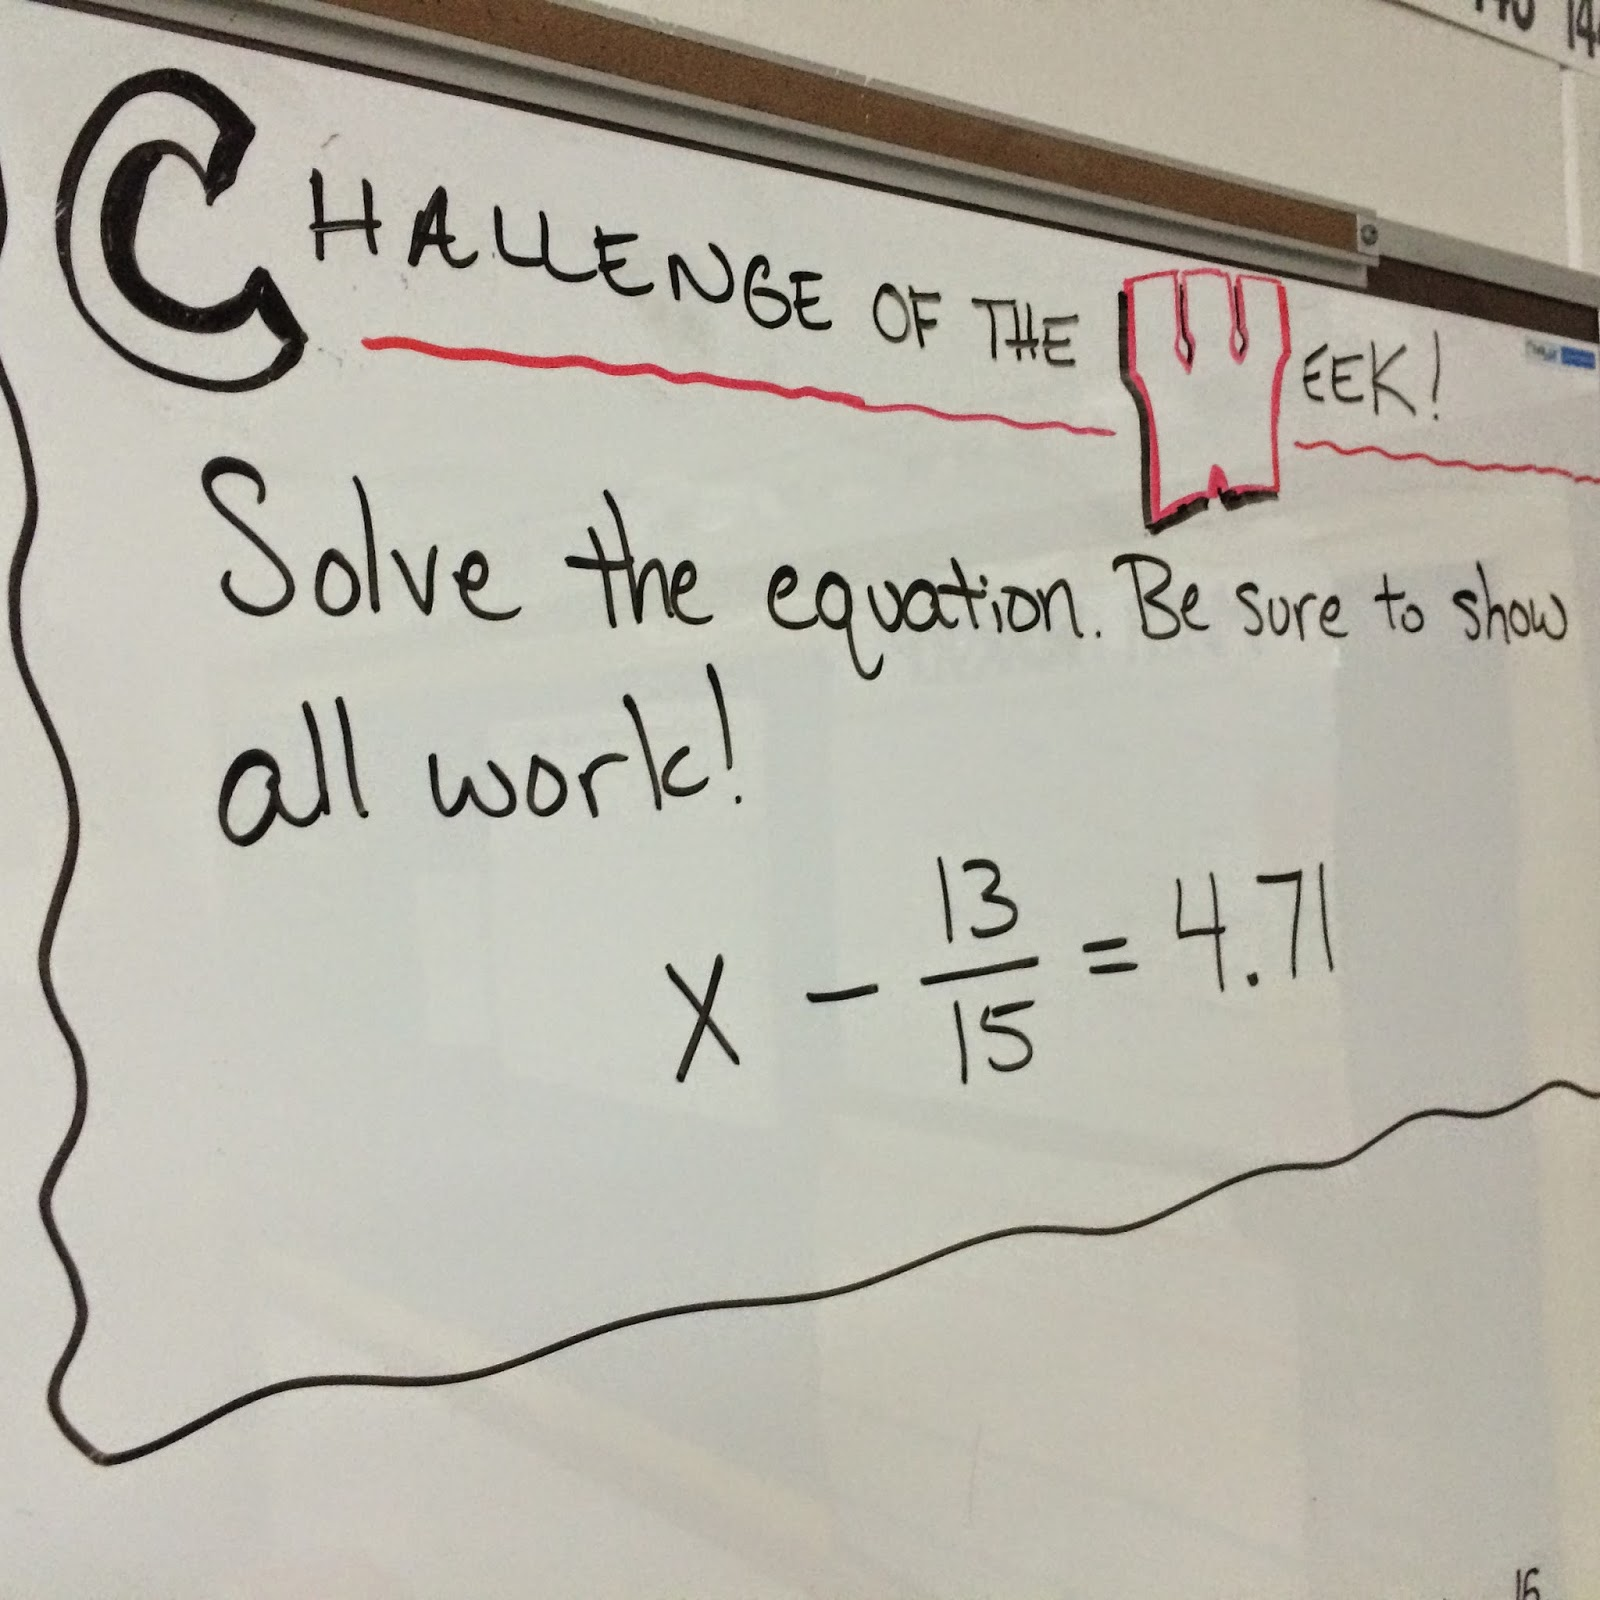 medium resolution of Middle School Math Man: Challenge of the Week